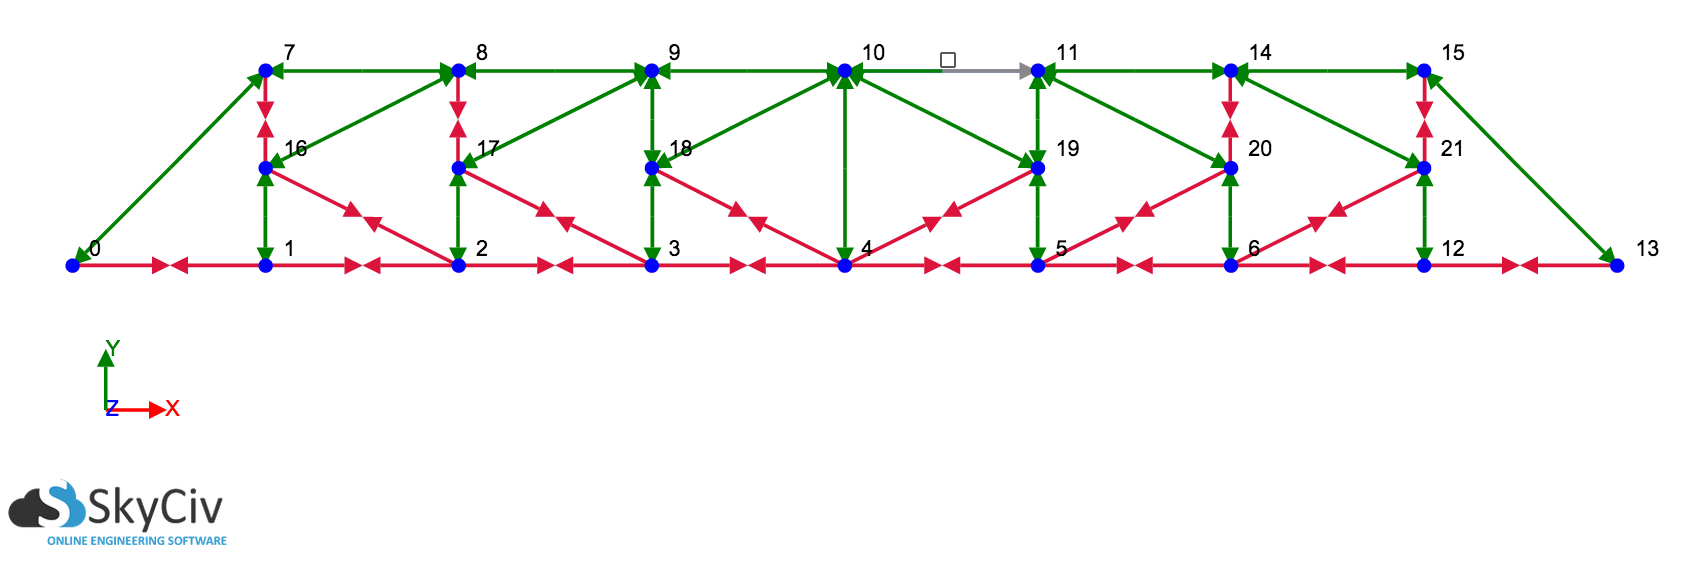 example of a K truss results produced by SkyCiv Truss software